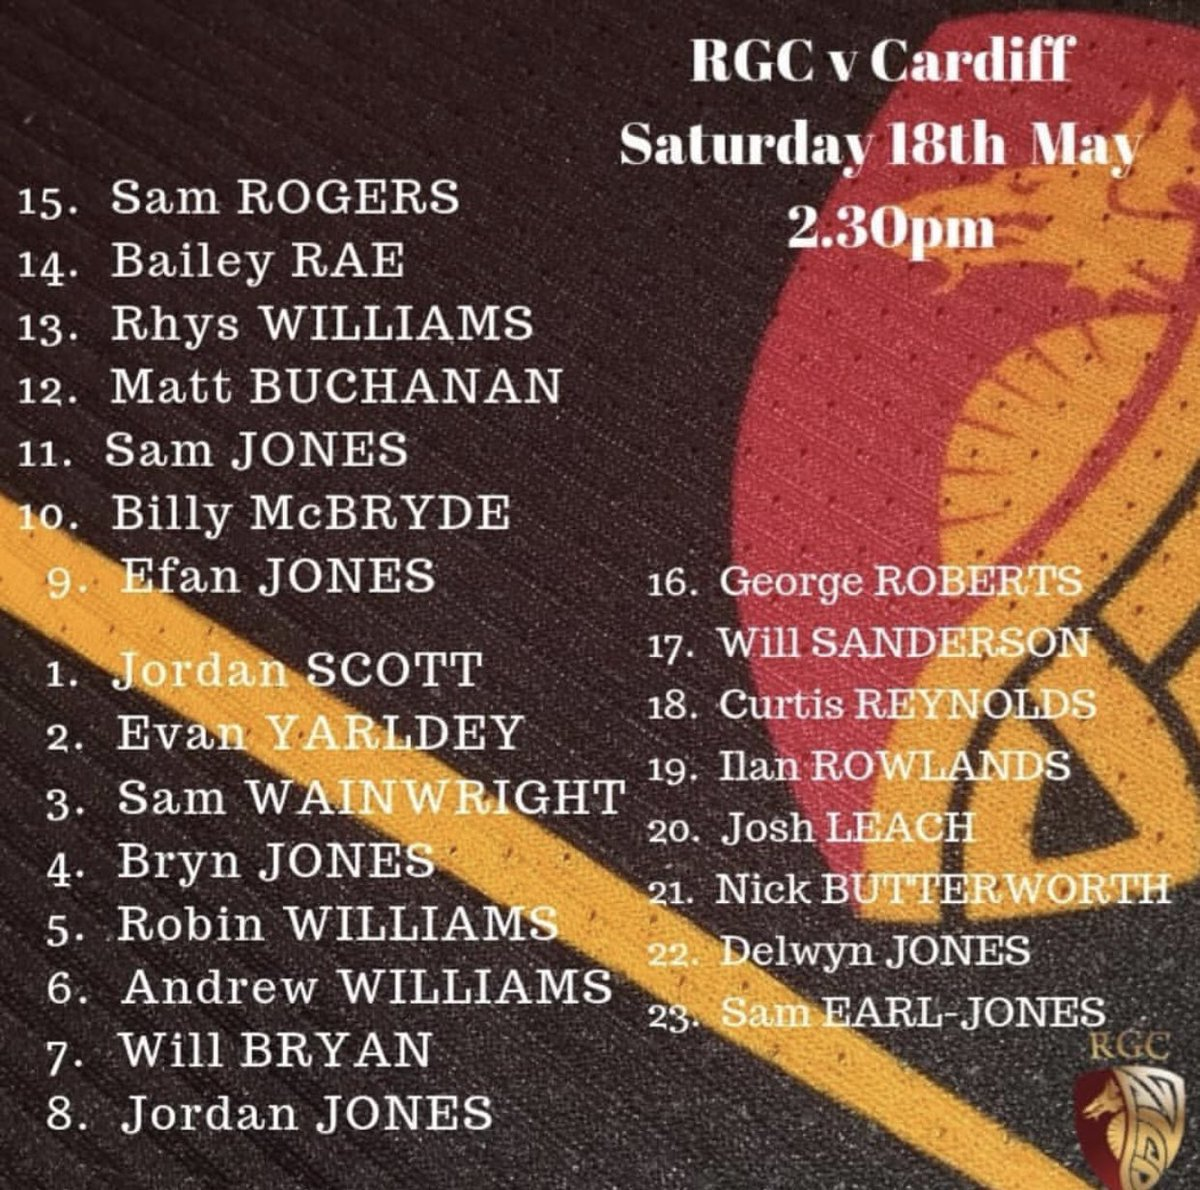 RGC1404's photo on game day